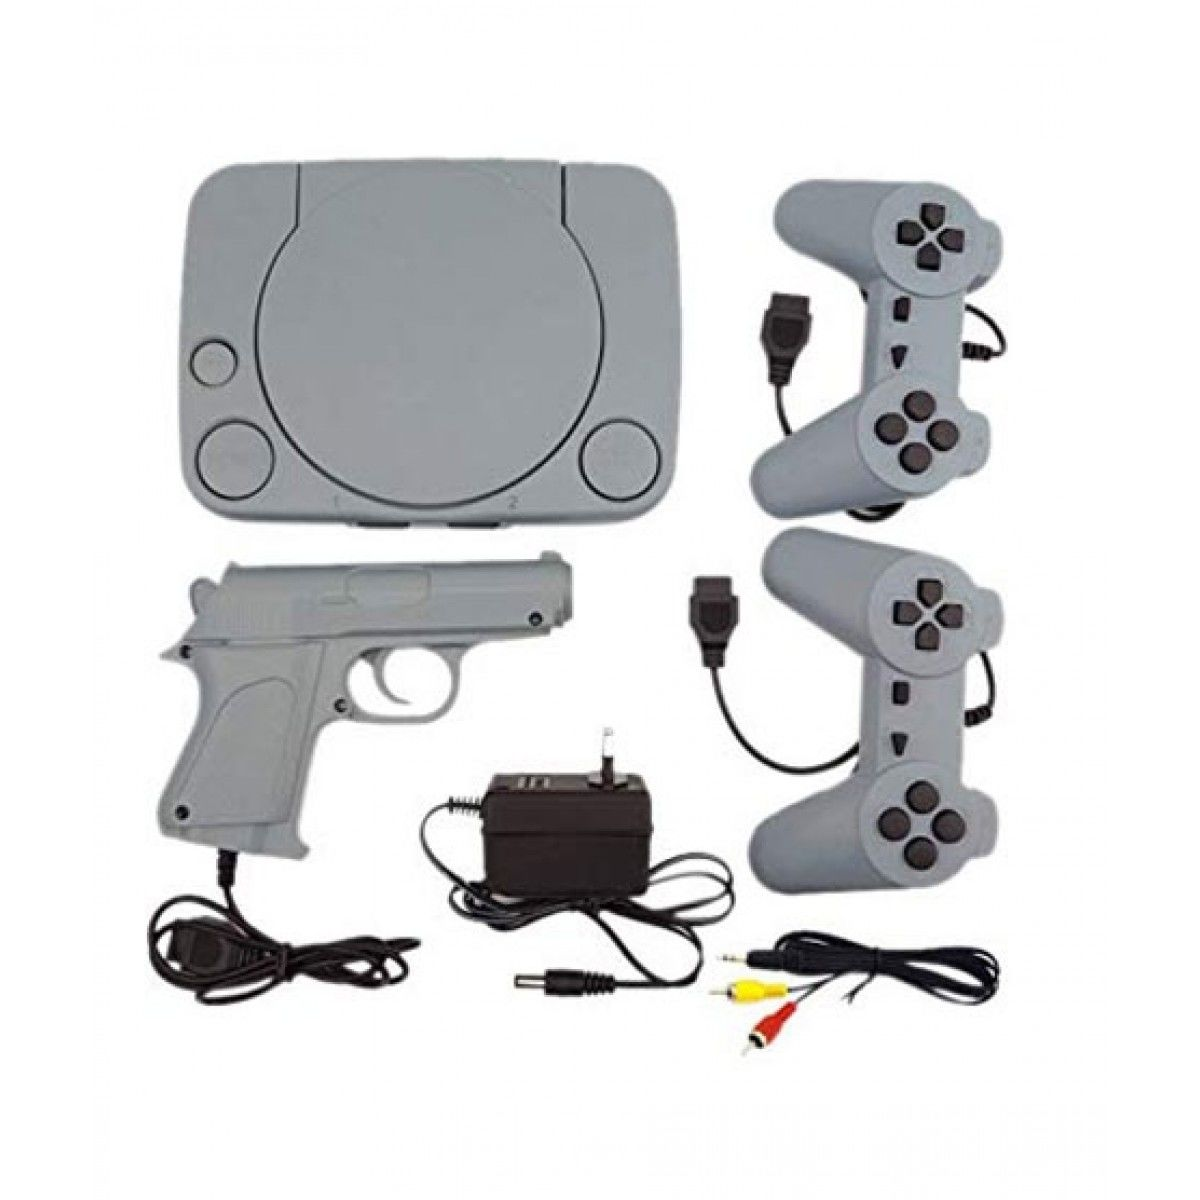 8 Bit TV Video Game Console with Inbuilt Games